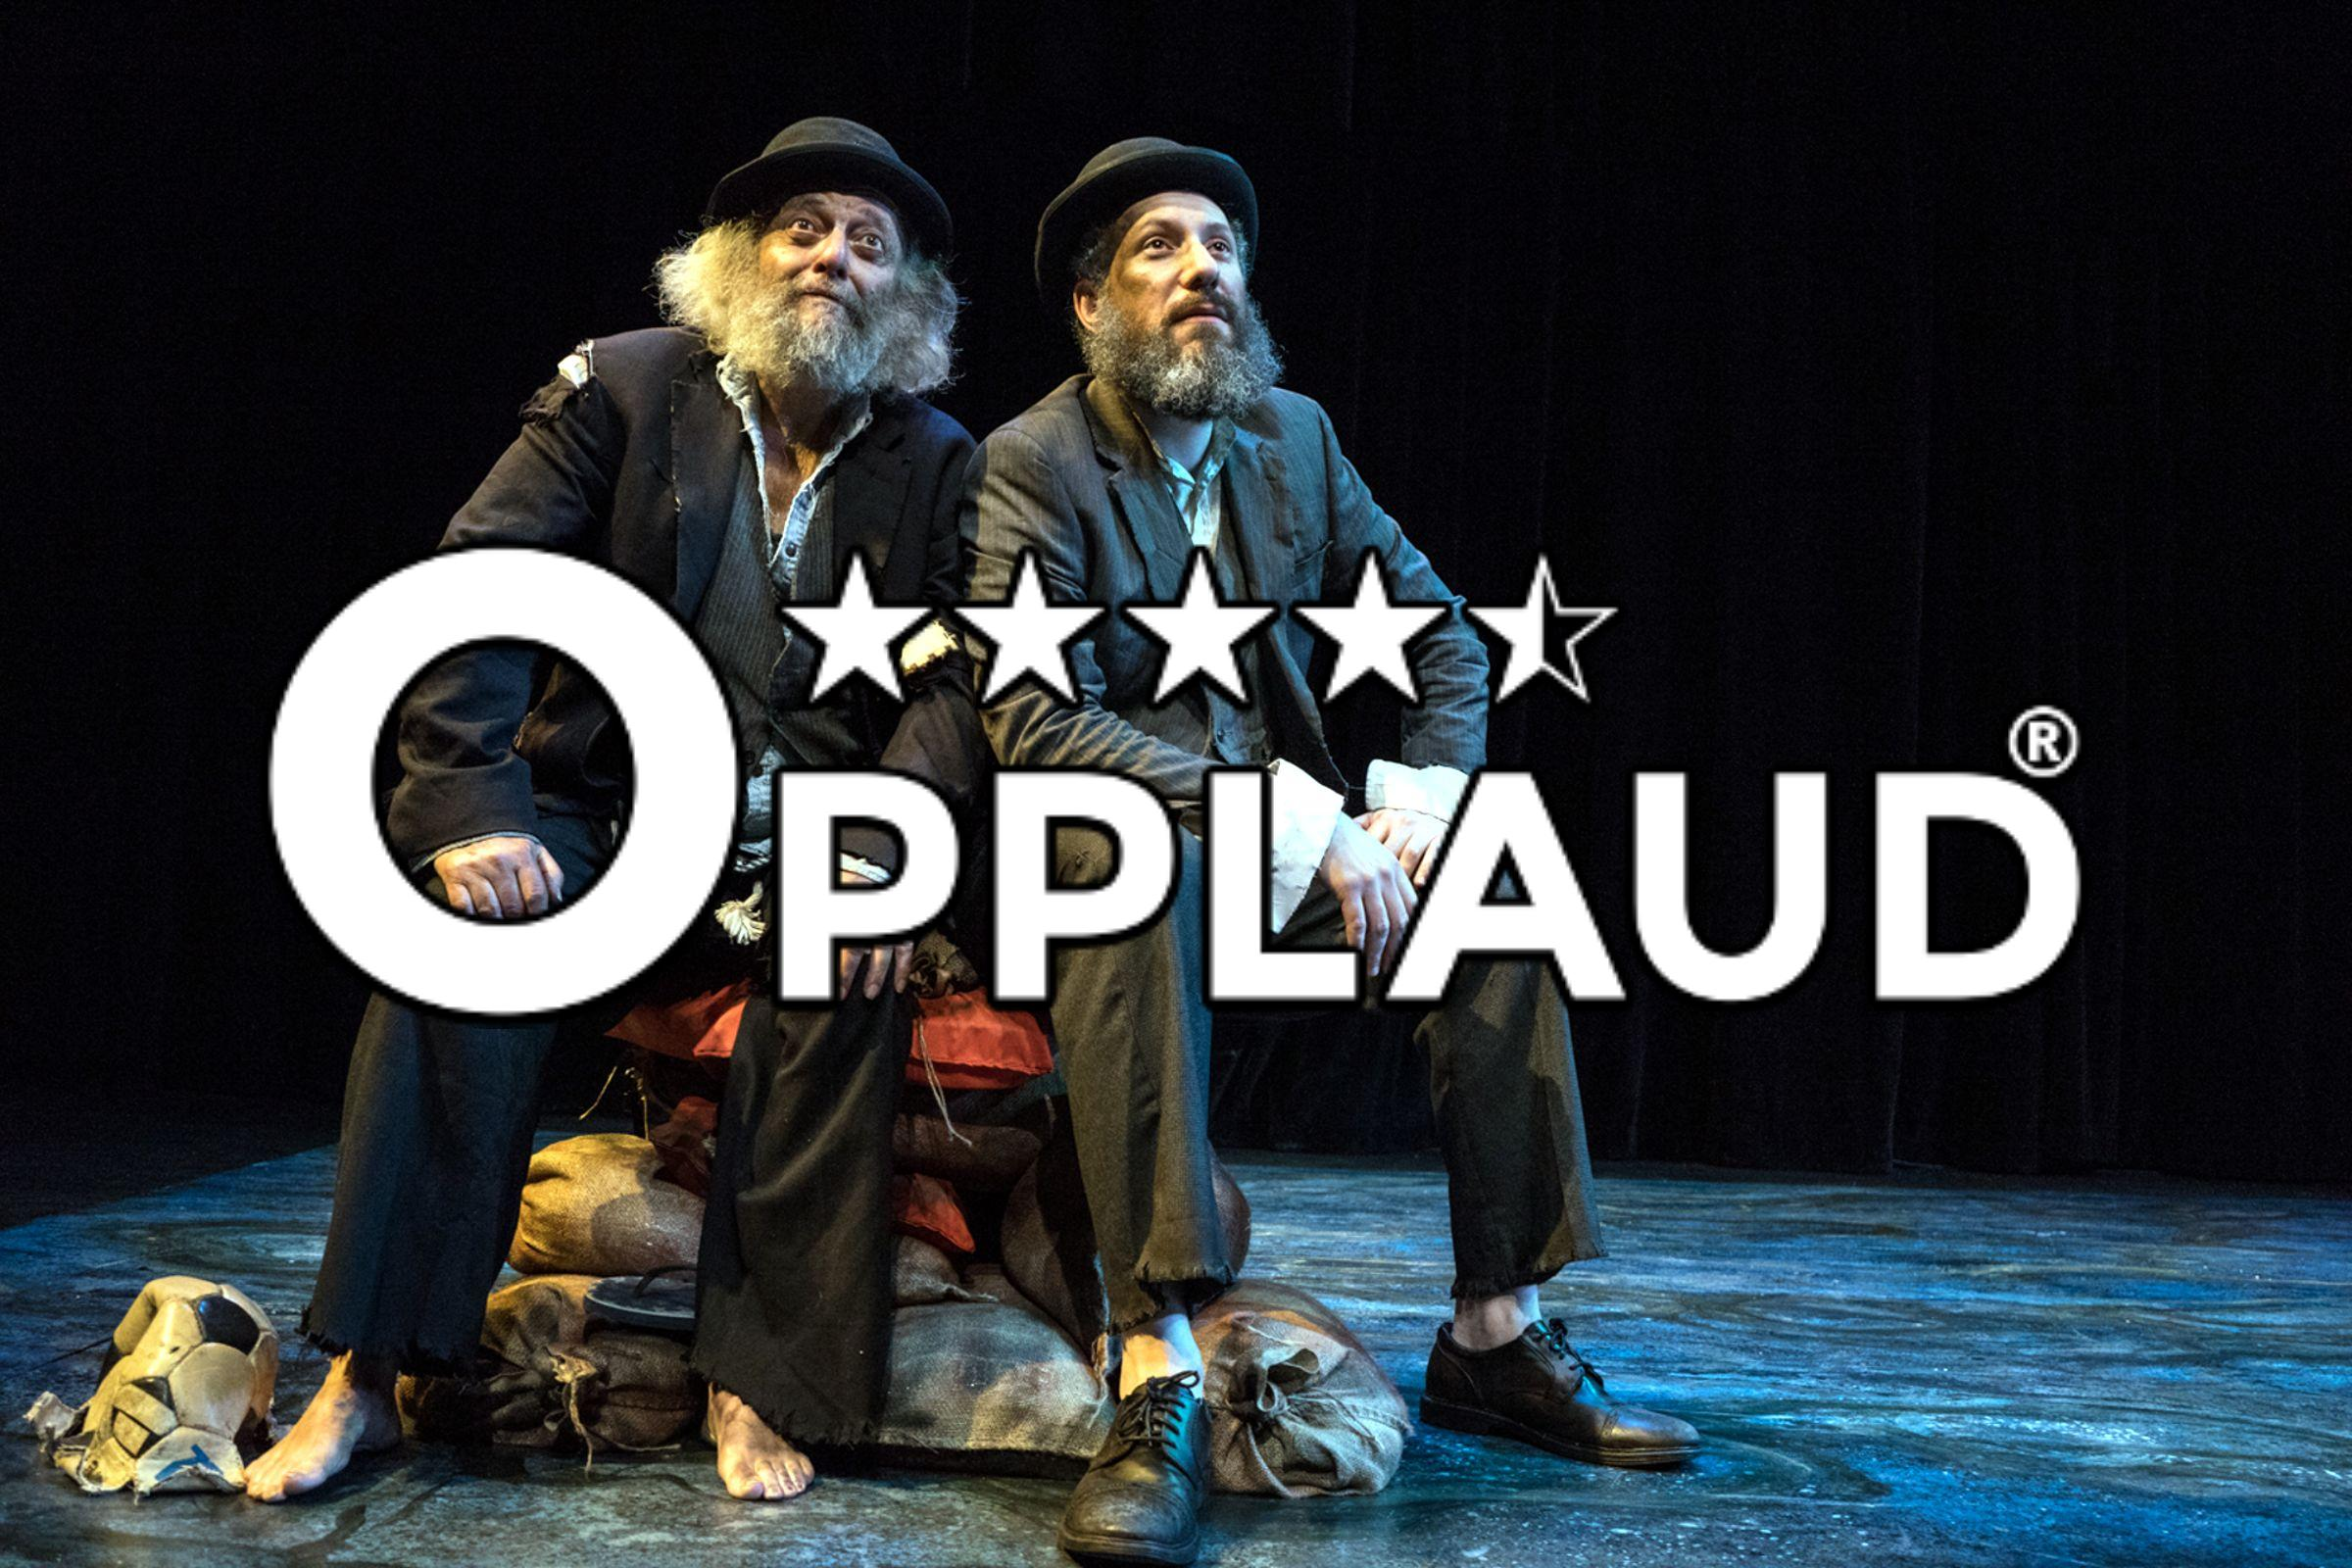 David Mandelbaum and Eli Rosen star in New Yiddish Rep's Waiting for Godot, performed in Yiddish at Theater at the 14th Street Y. Original photo by Dina Raketa.